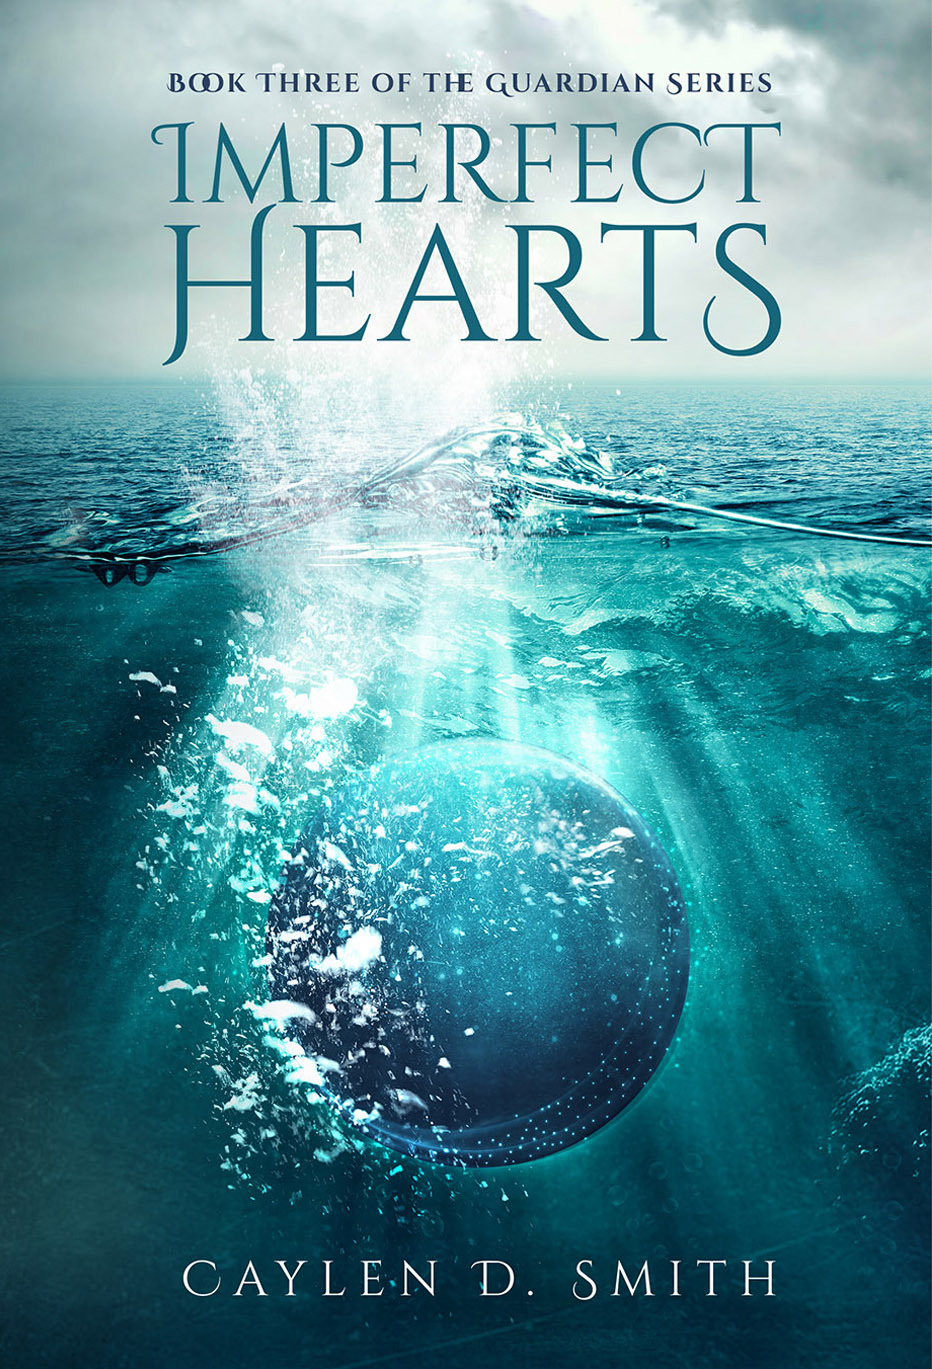 Imperfect hearts ebook 3